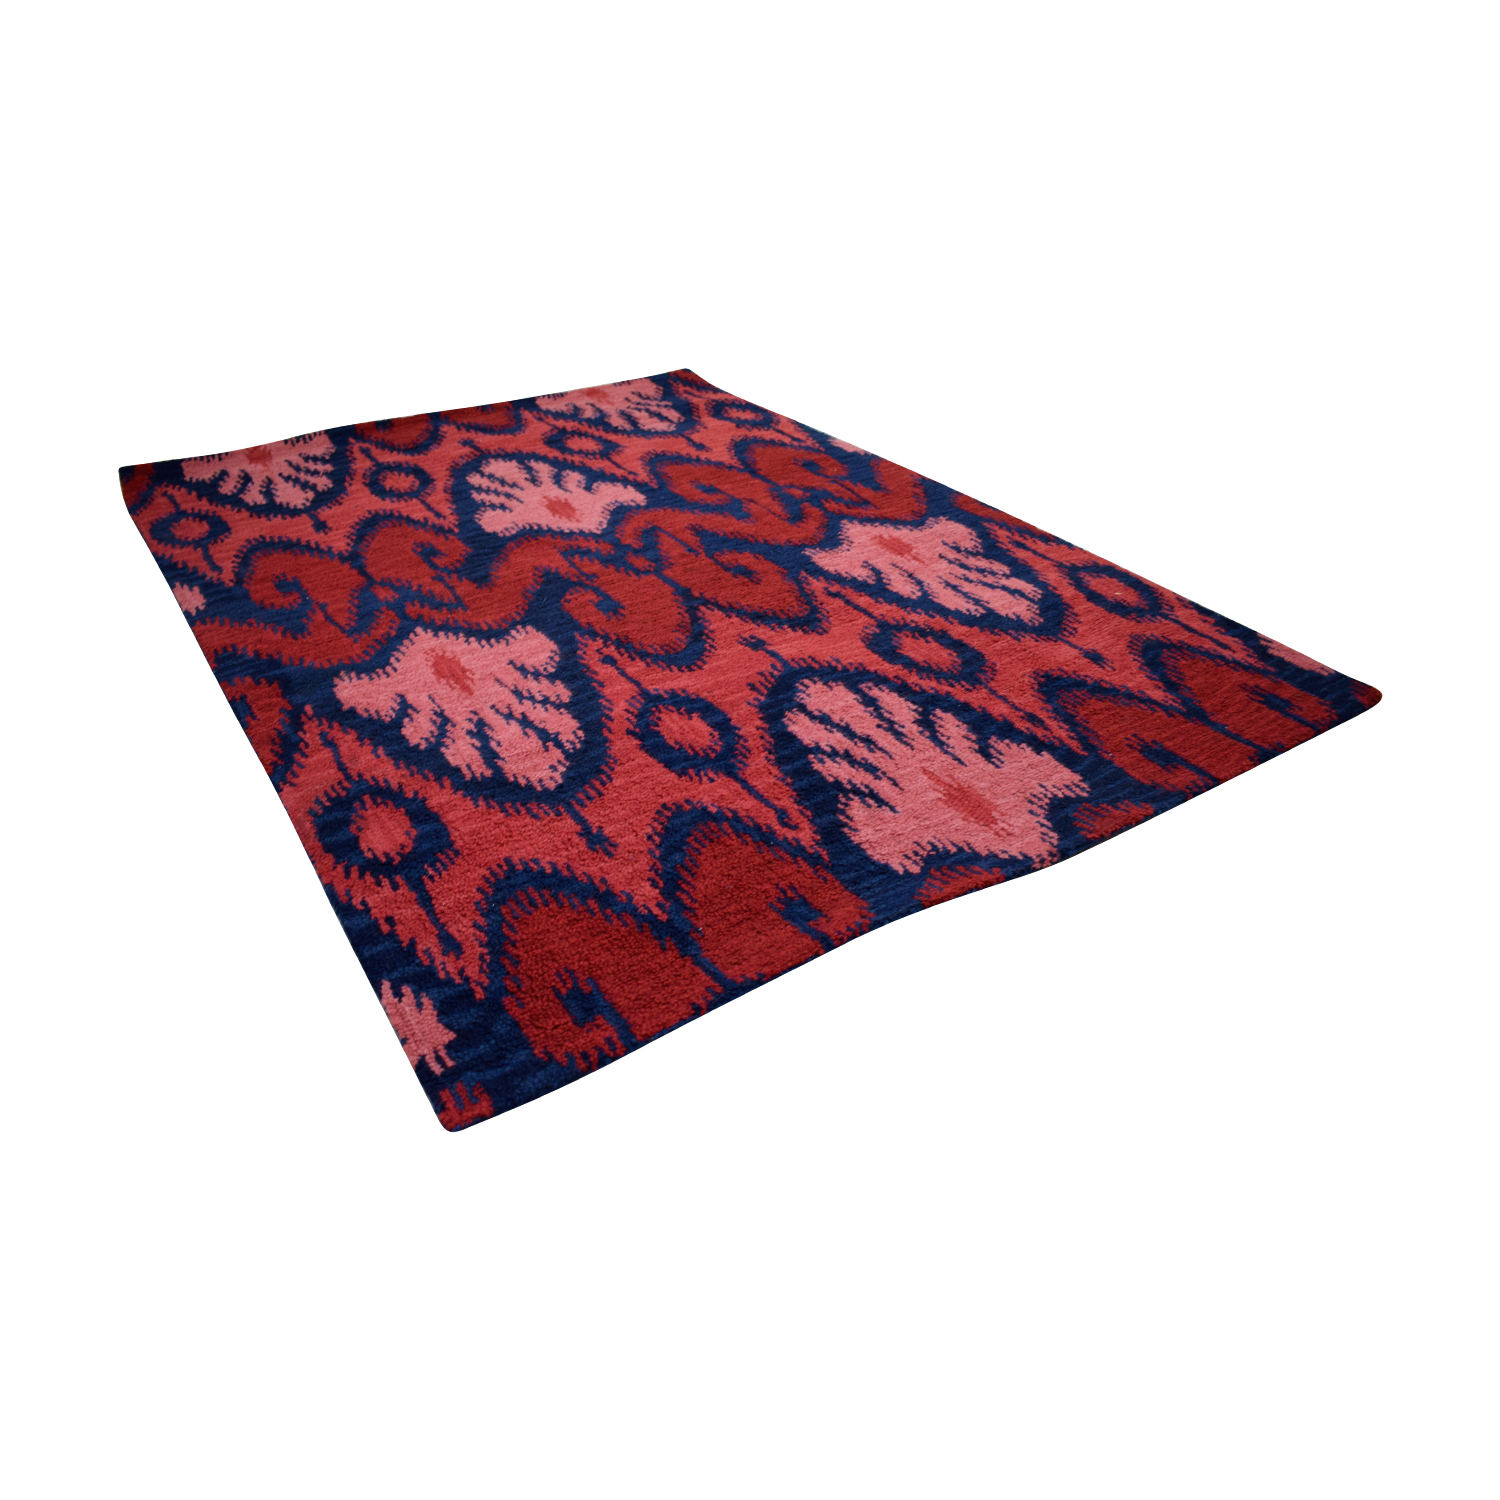 buy Ikat Wool Red and Navy Rug Decor